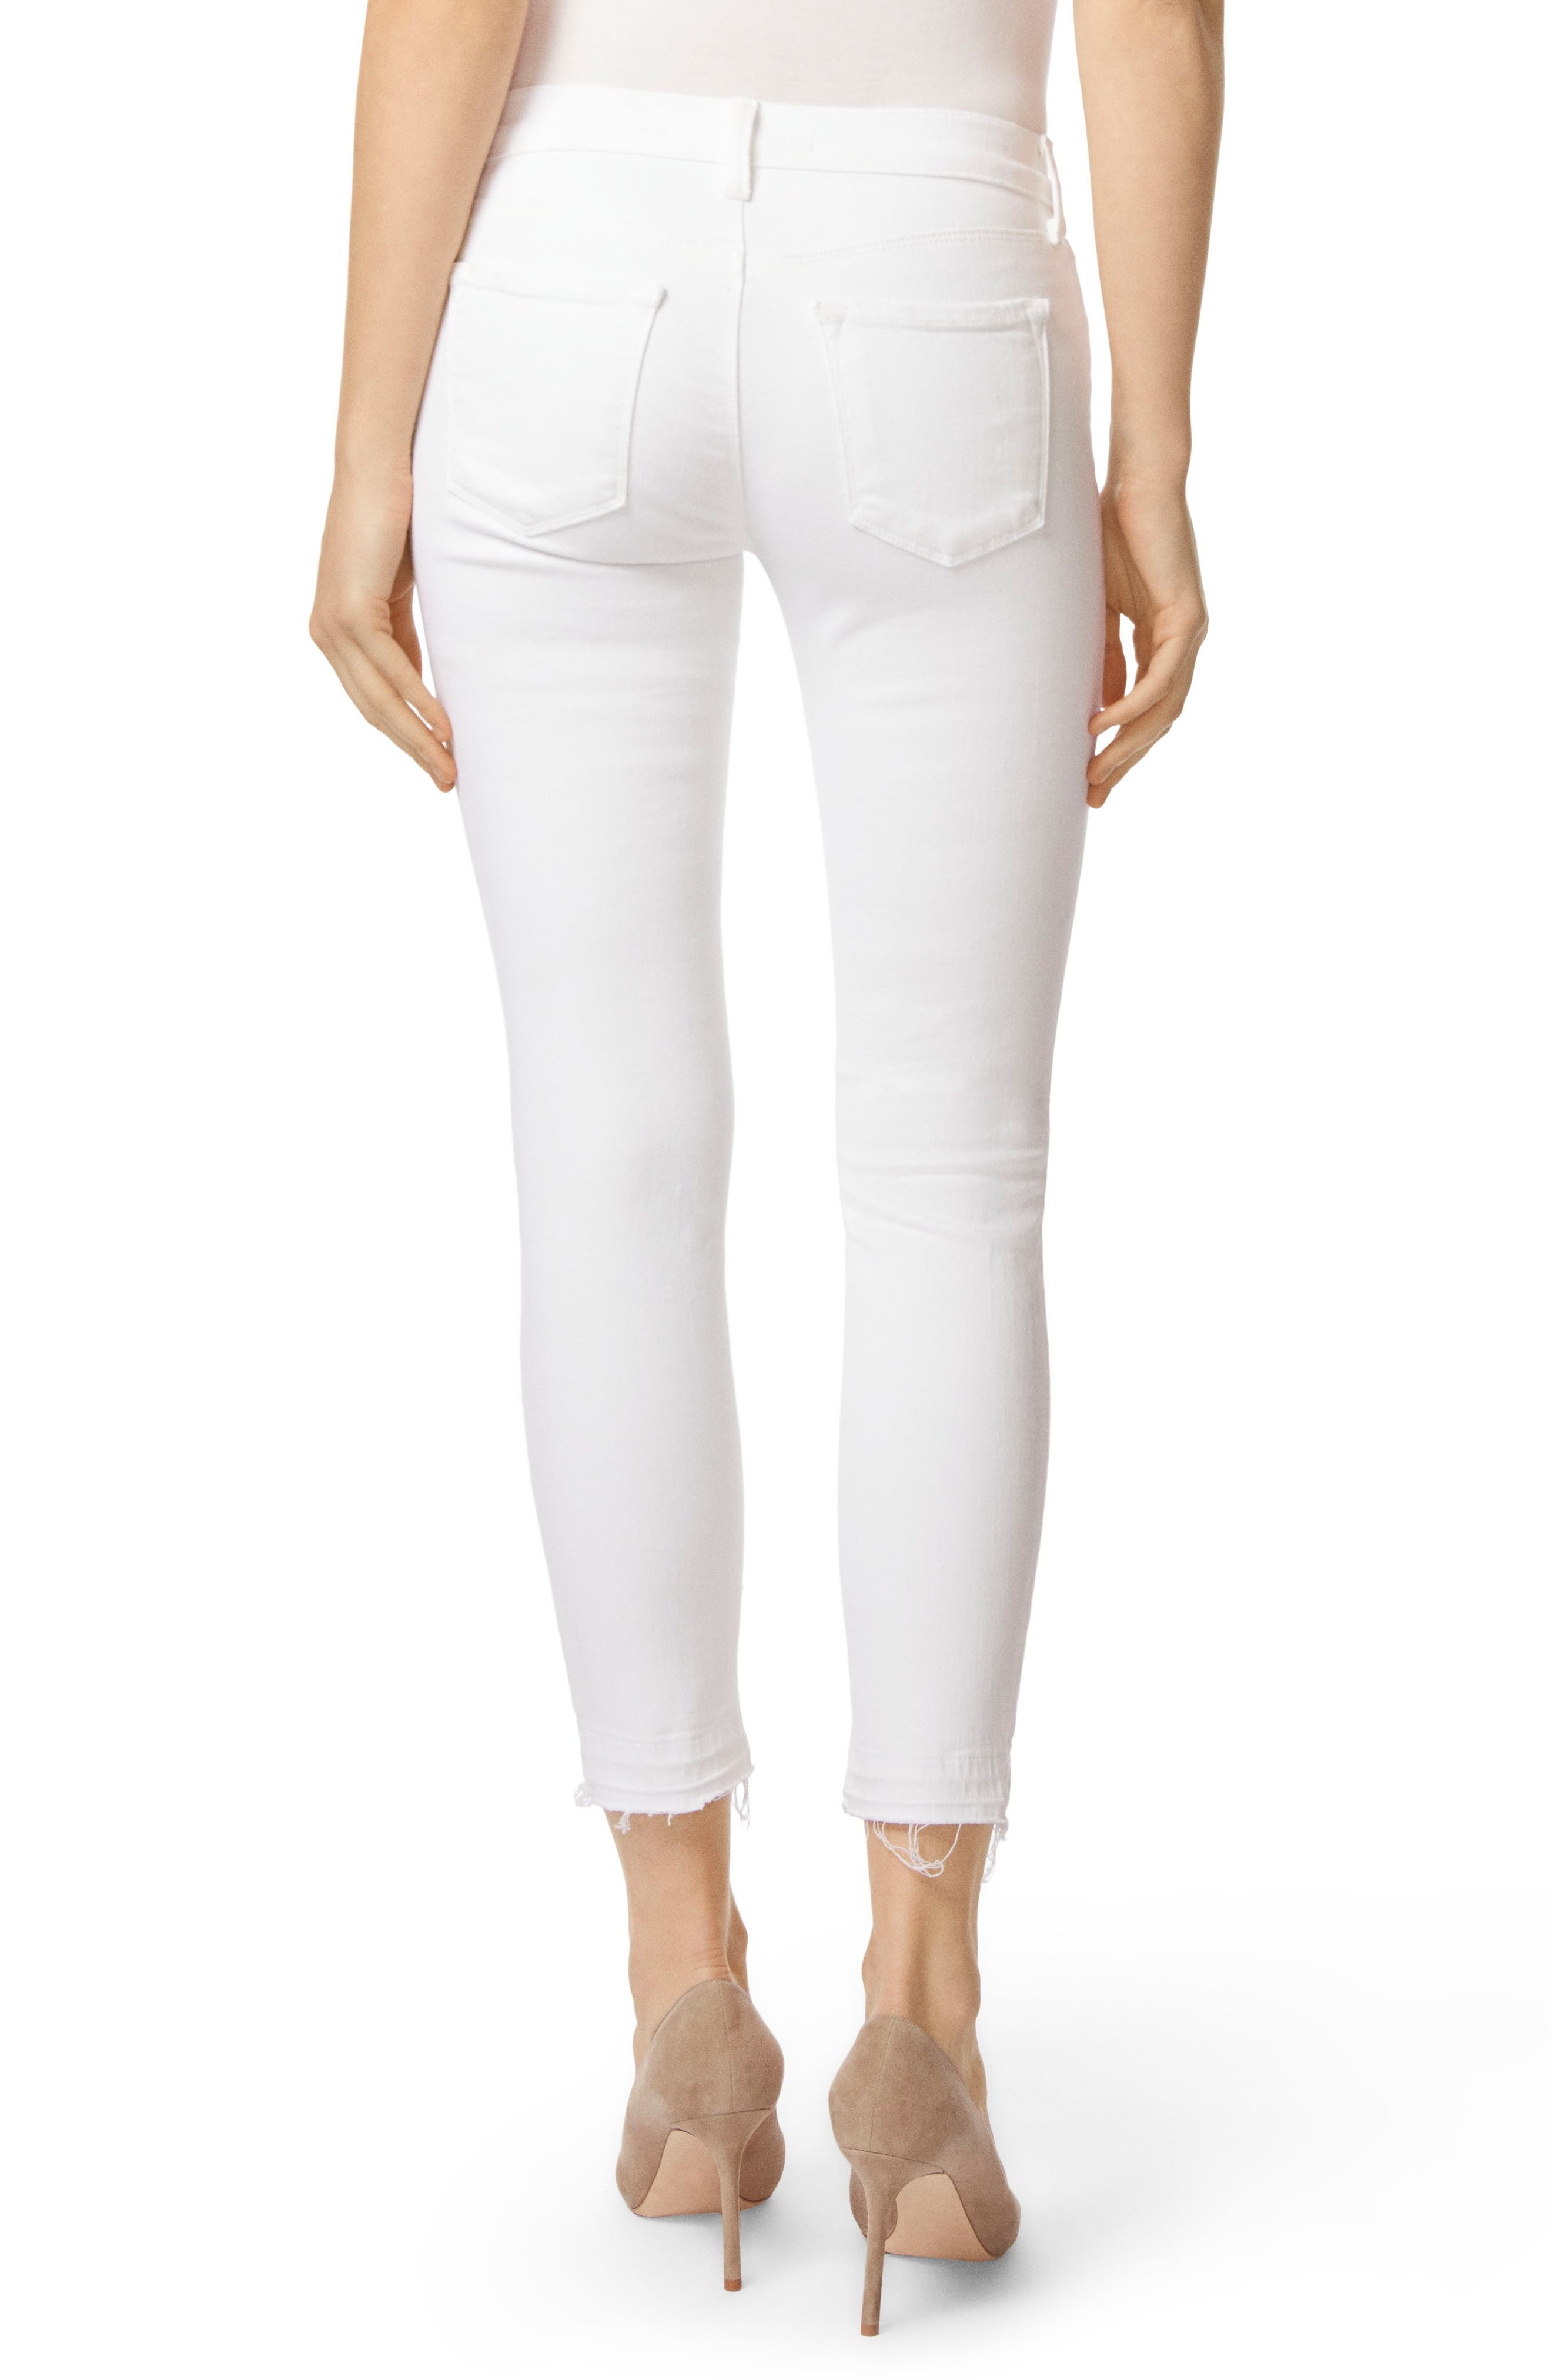 J BRAND, 9326 Low Rise Crop Skinny Jeans, Alternate thumbnail 2, color, DEMENTED WHITE DESTRUCTED